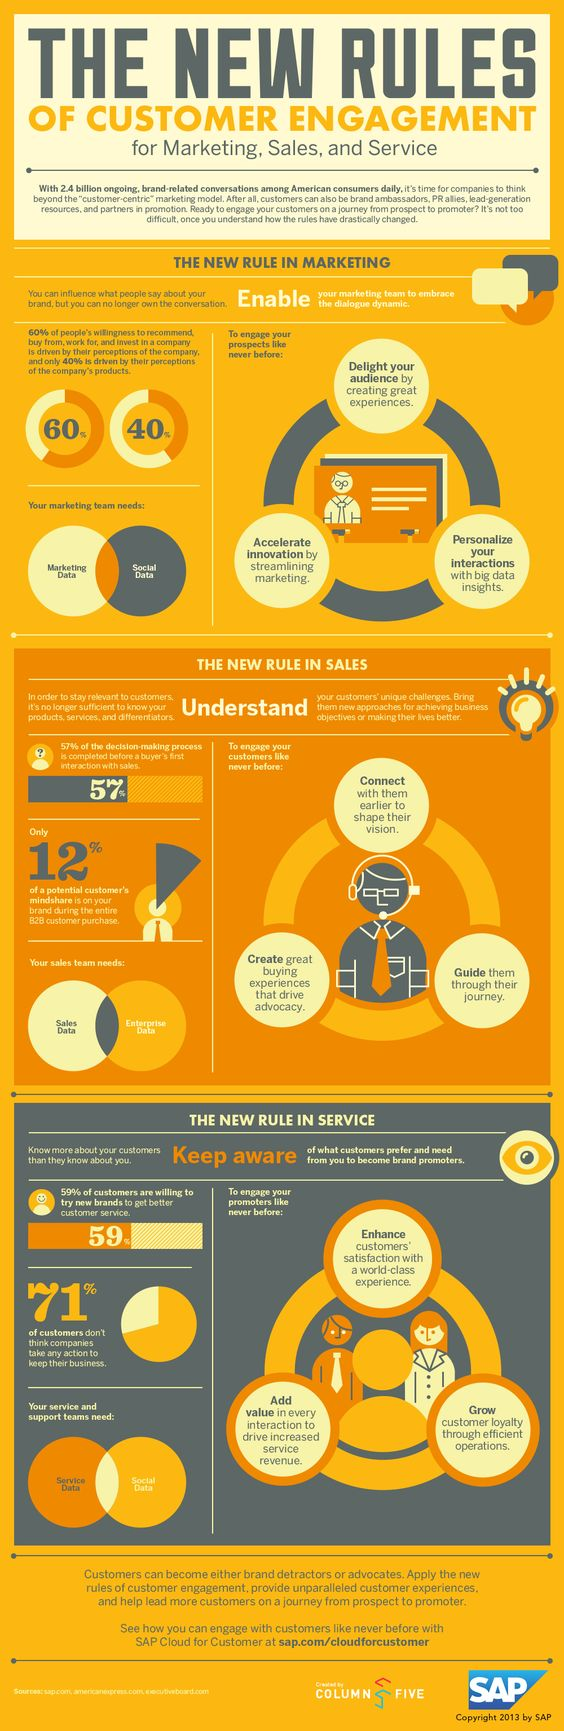 3 New Rules of Customer Engagement For #Marketing, #Infographic  #CustomerService